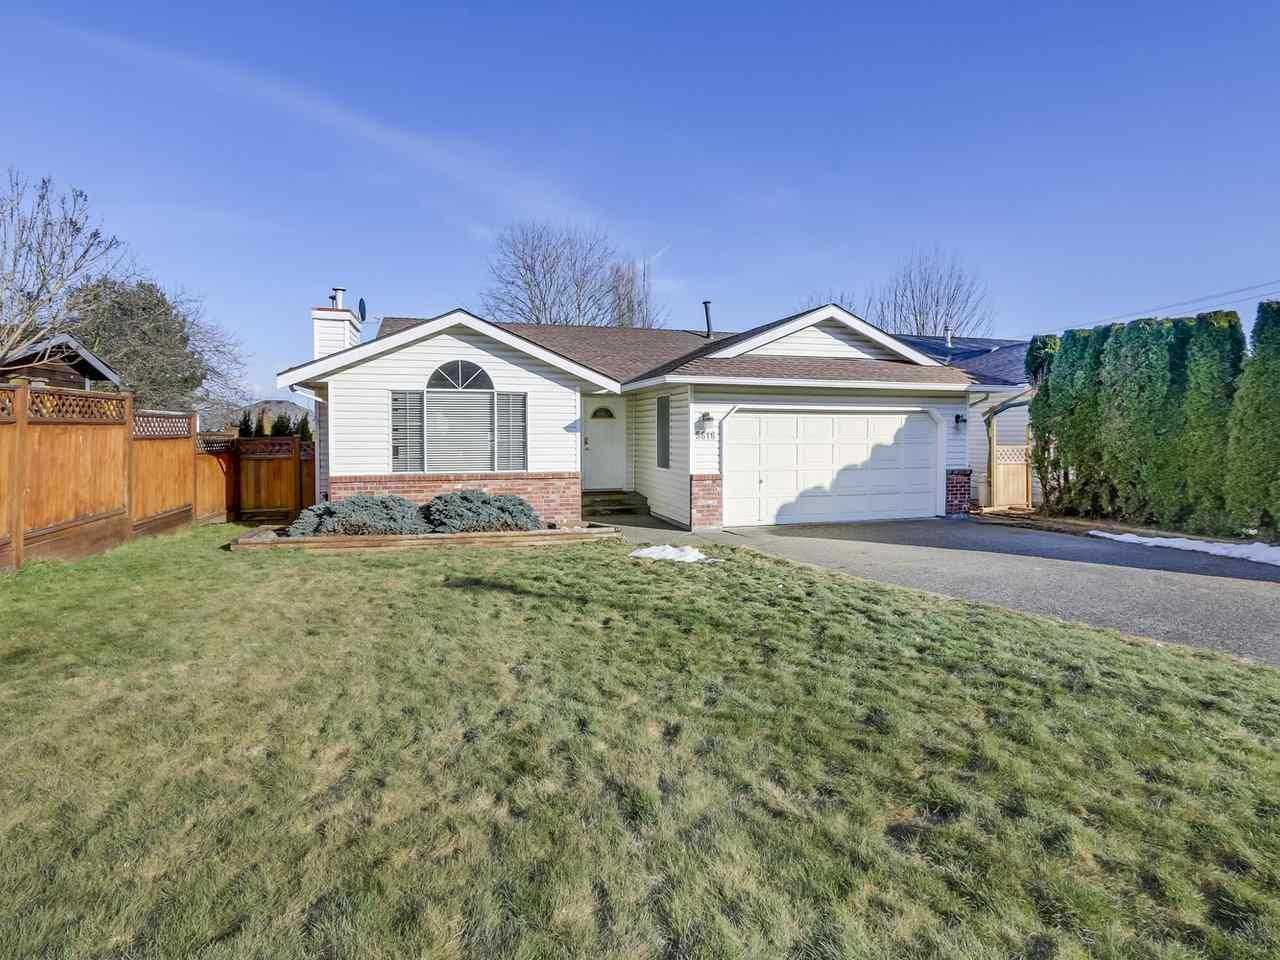 Main Photo: 5616 SUNDALE Place in Surrey: Cloverdale BC House for sale (Cloverdale)  : MLS®# R2345126